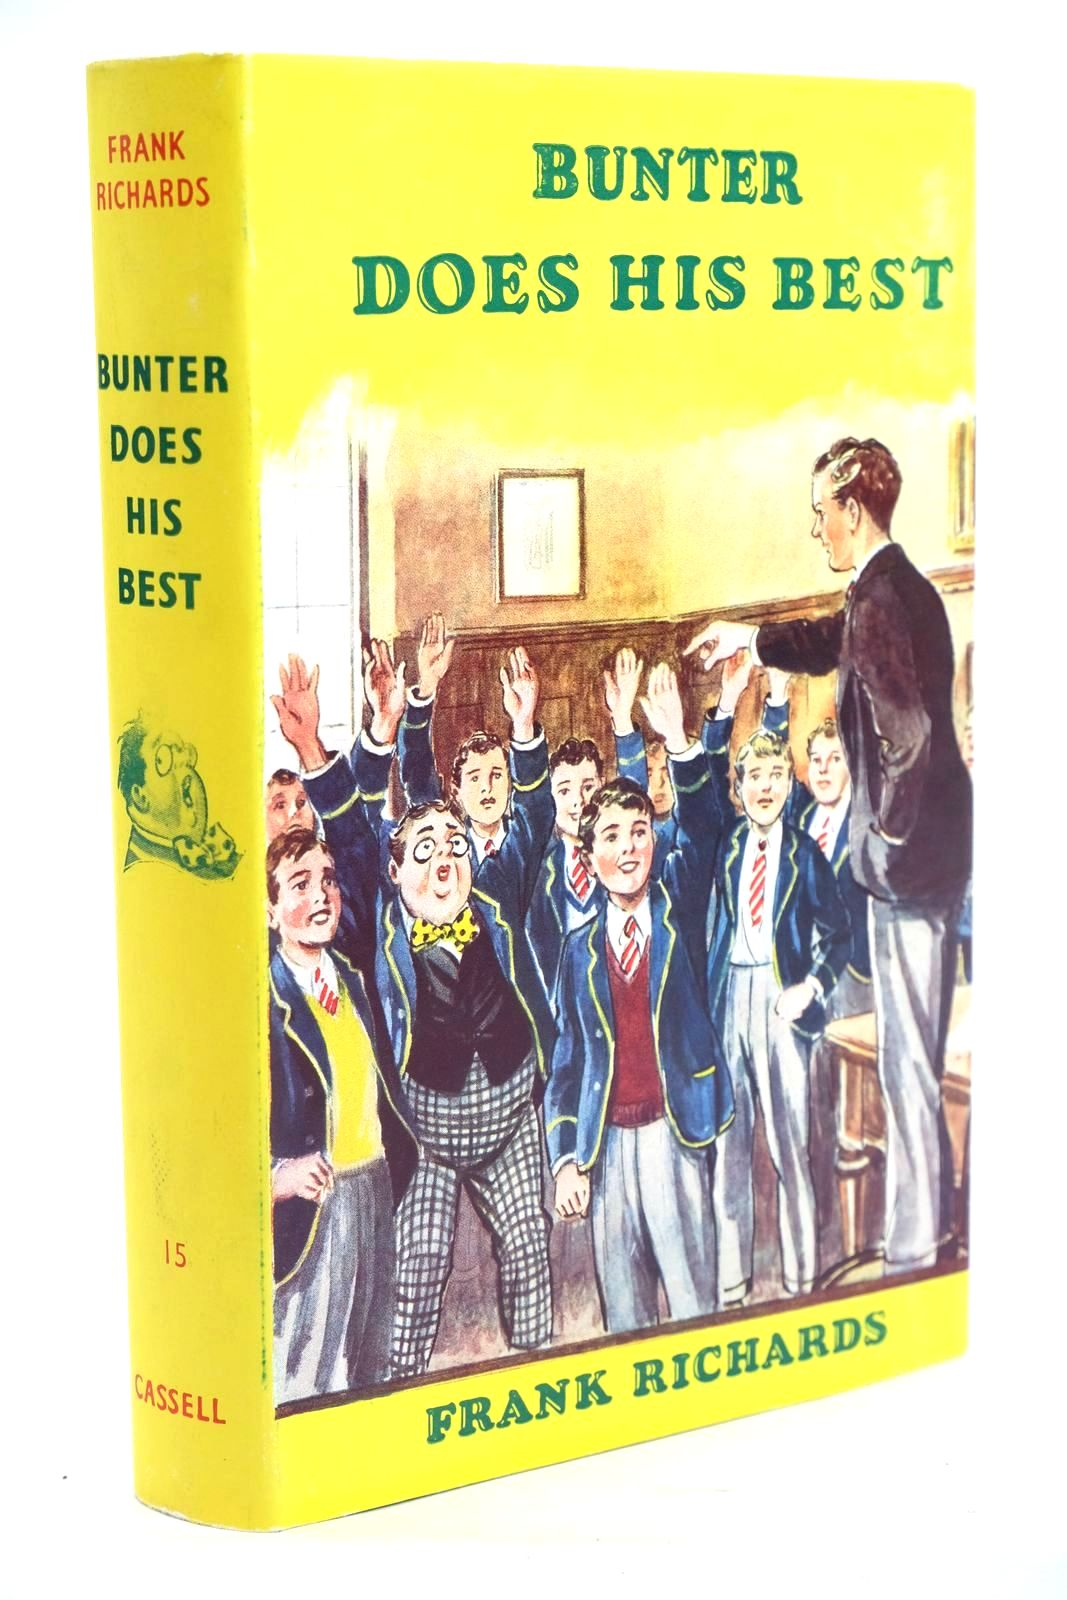 Photo of BUNTER DOES HIS BEST written by Richards, Frank illustrated by Macdonald, R.J. published by Cassell & Co. Ltd. (STOCK CODE: 1319698)  for sale by Stella & Rose's Books